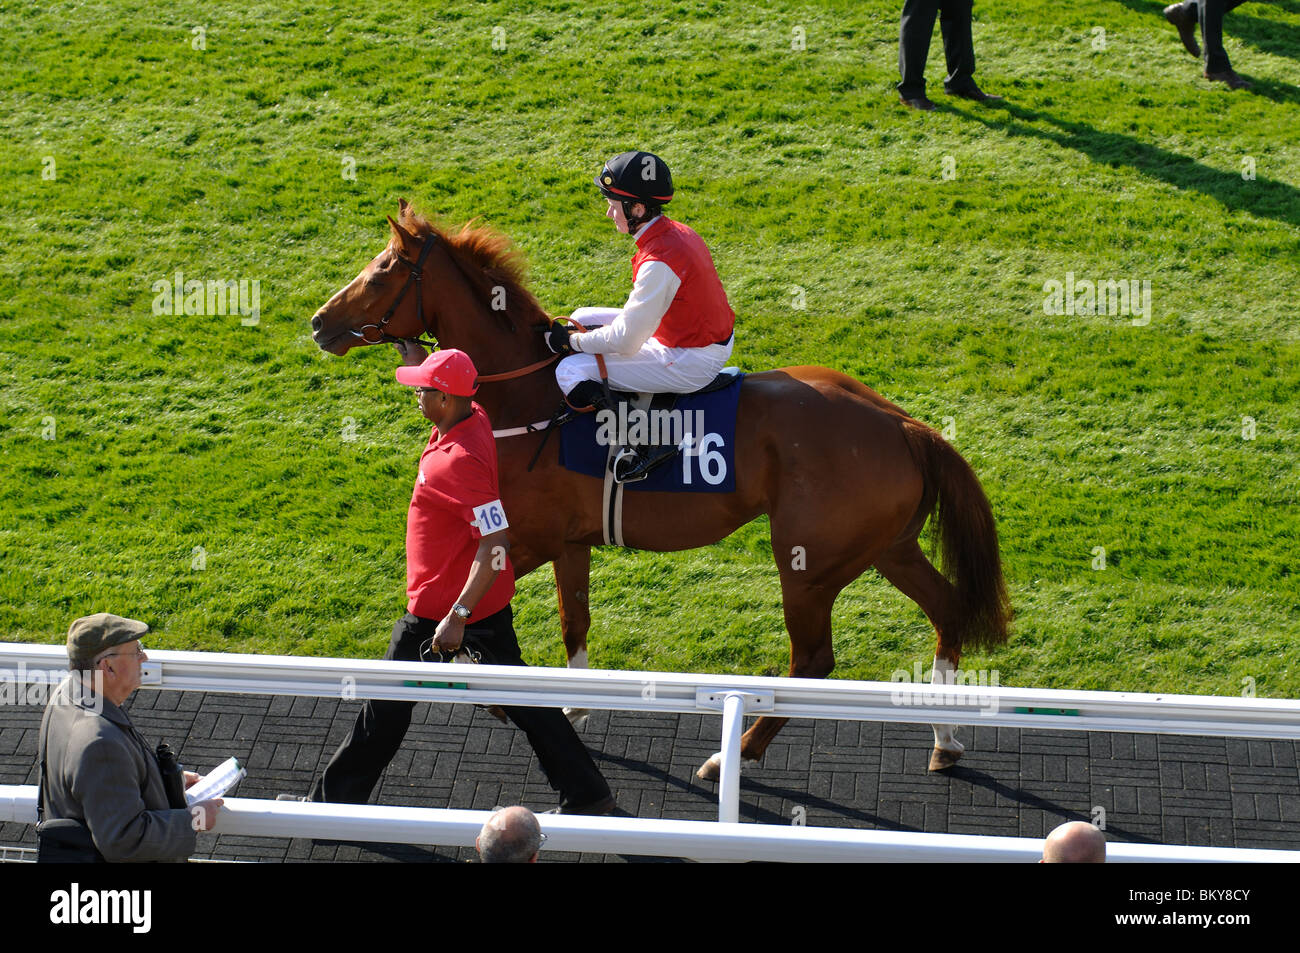 Horse led in the Parade Ring at Warwick Races, UK - Stock Image